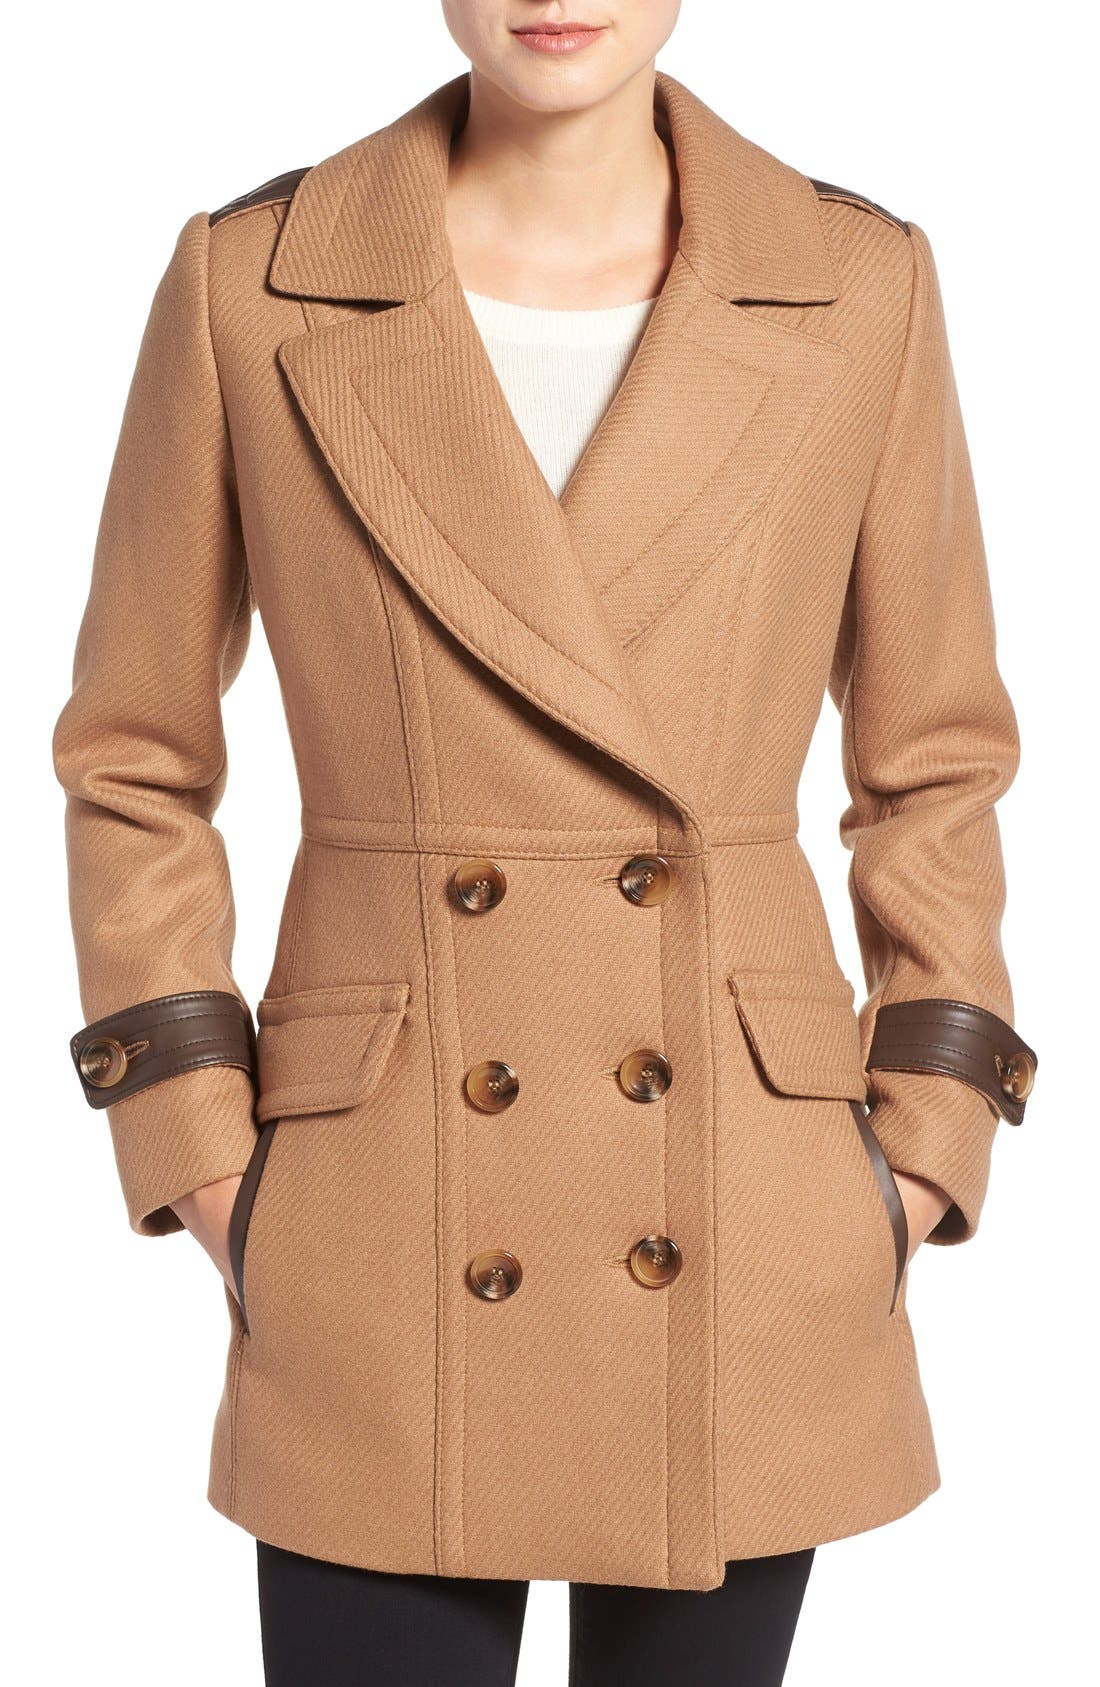 'Chloe' Wool Blend Peacoat,                         Main,                         color, Camel